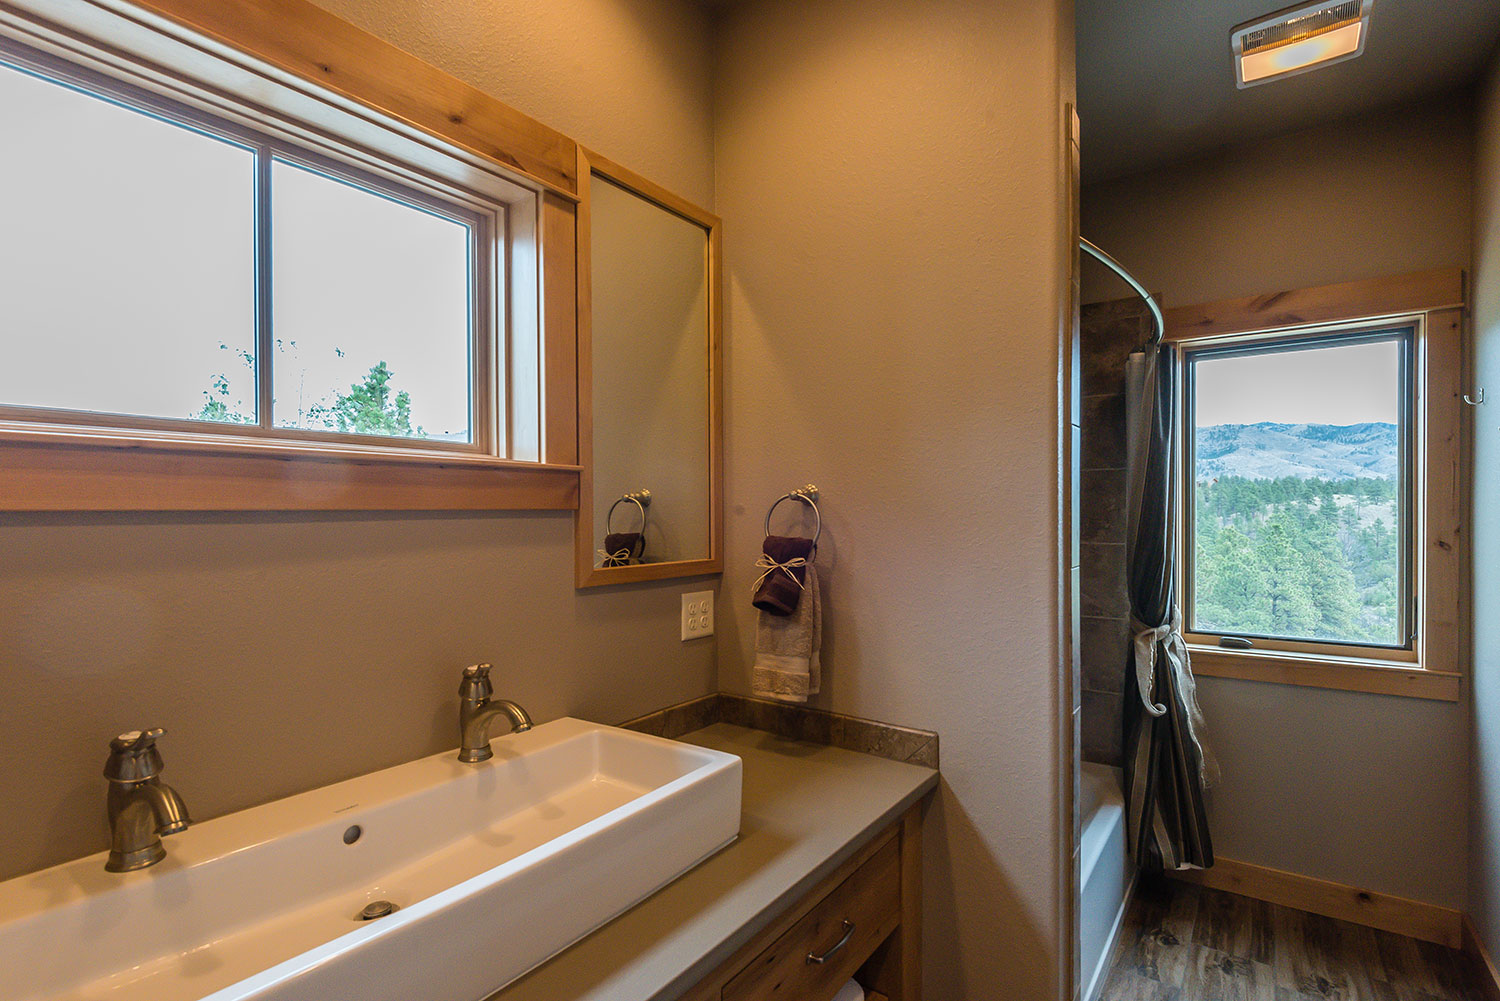 Bathroom with long rectangular sink with two faucets below a window with a shower and another window further back